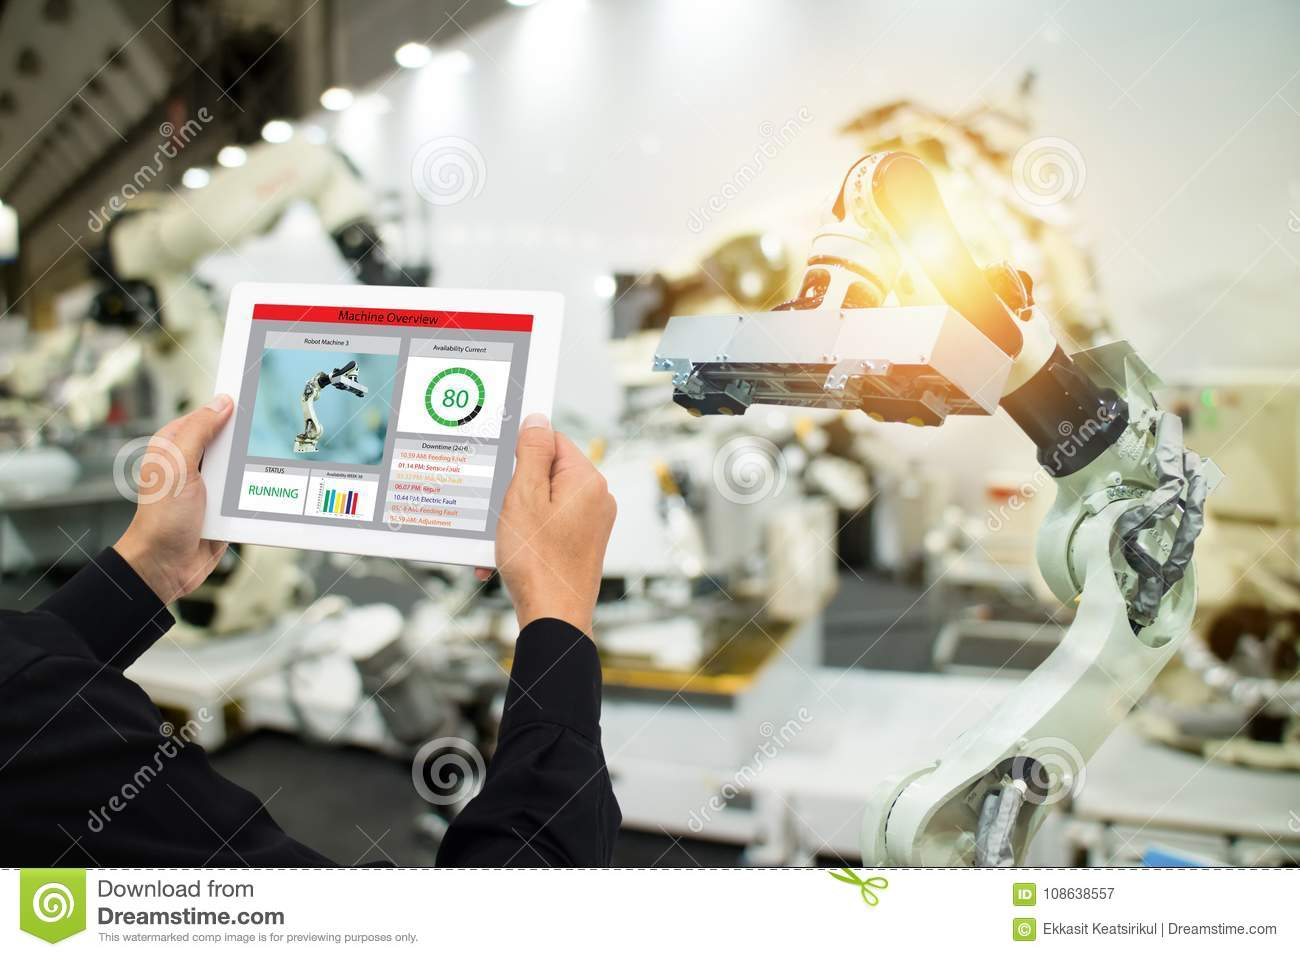 Iot industry 4.0 concept,industrial engineer using software augmented, virtual reality in tablet to monitoring machine in real t